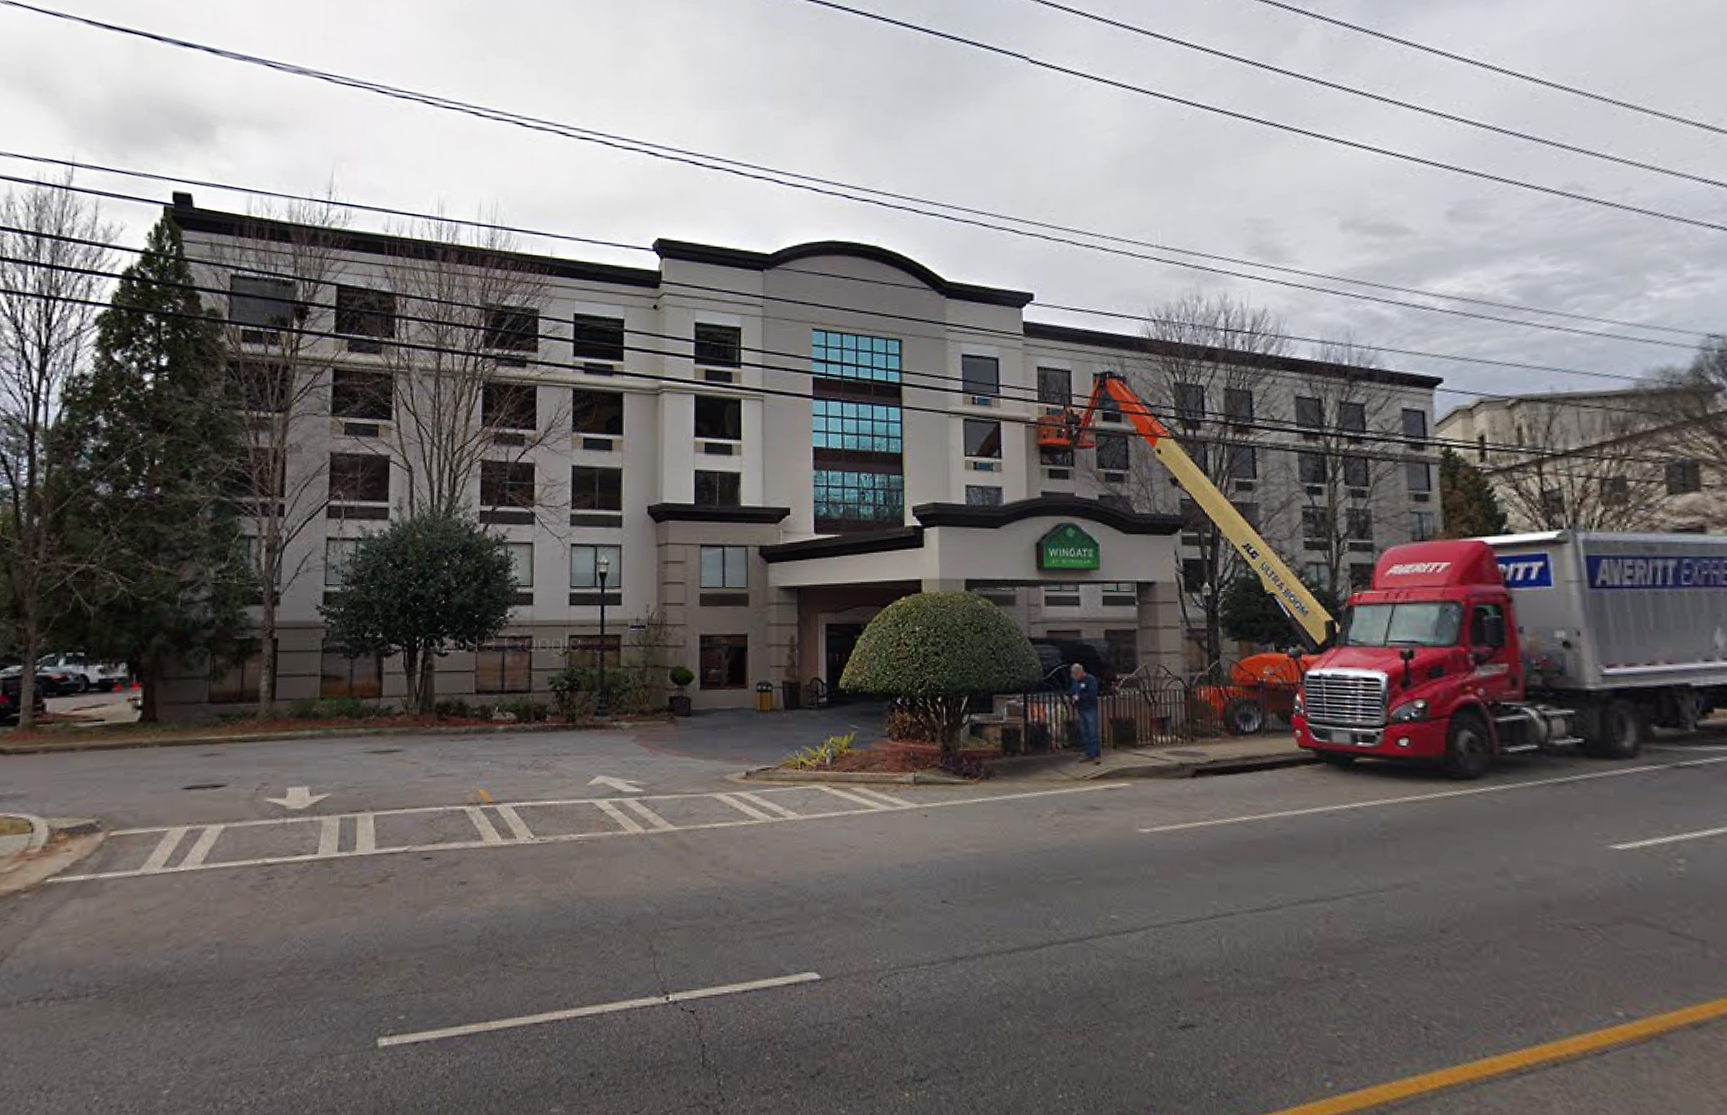 A stucco-faced, five-story hotel in Buckhead is undergoing renovations, with a cherry-picker and moving truck out front.